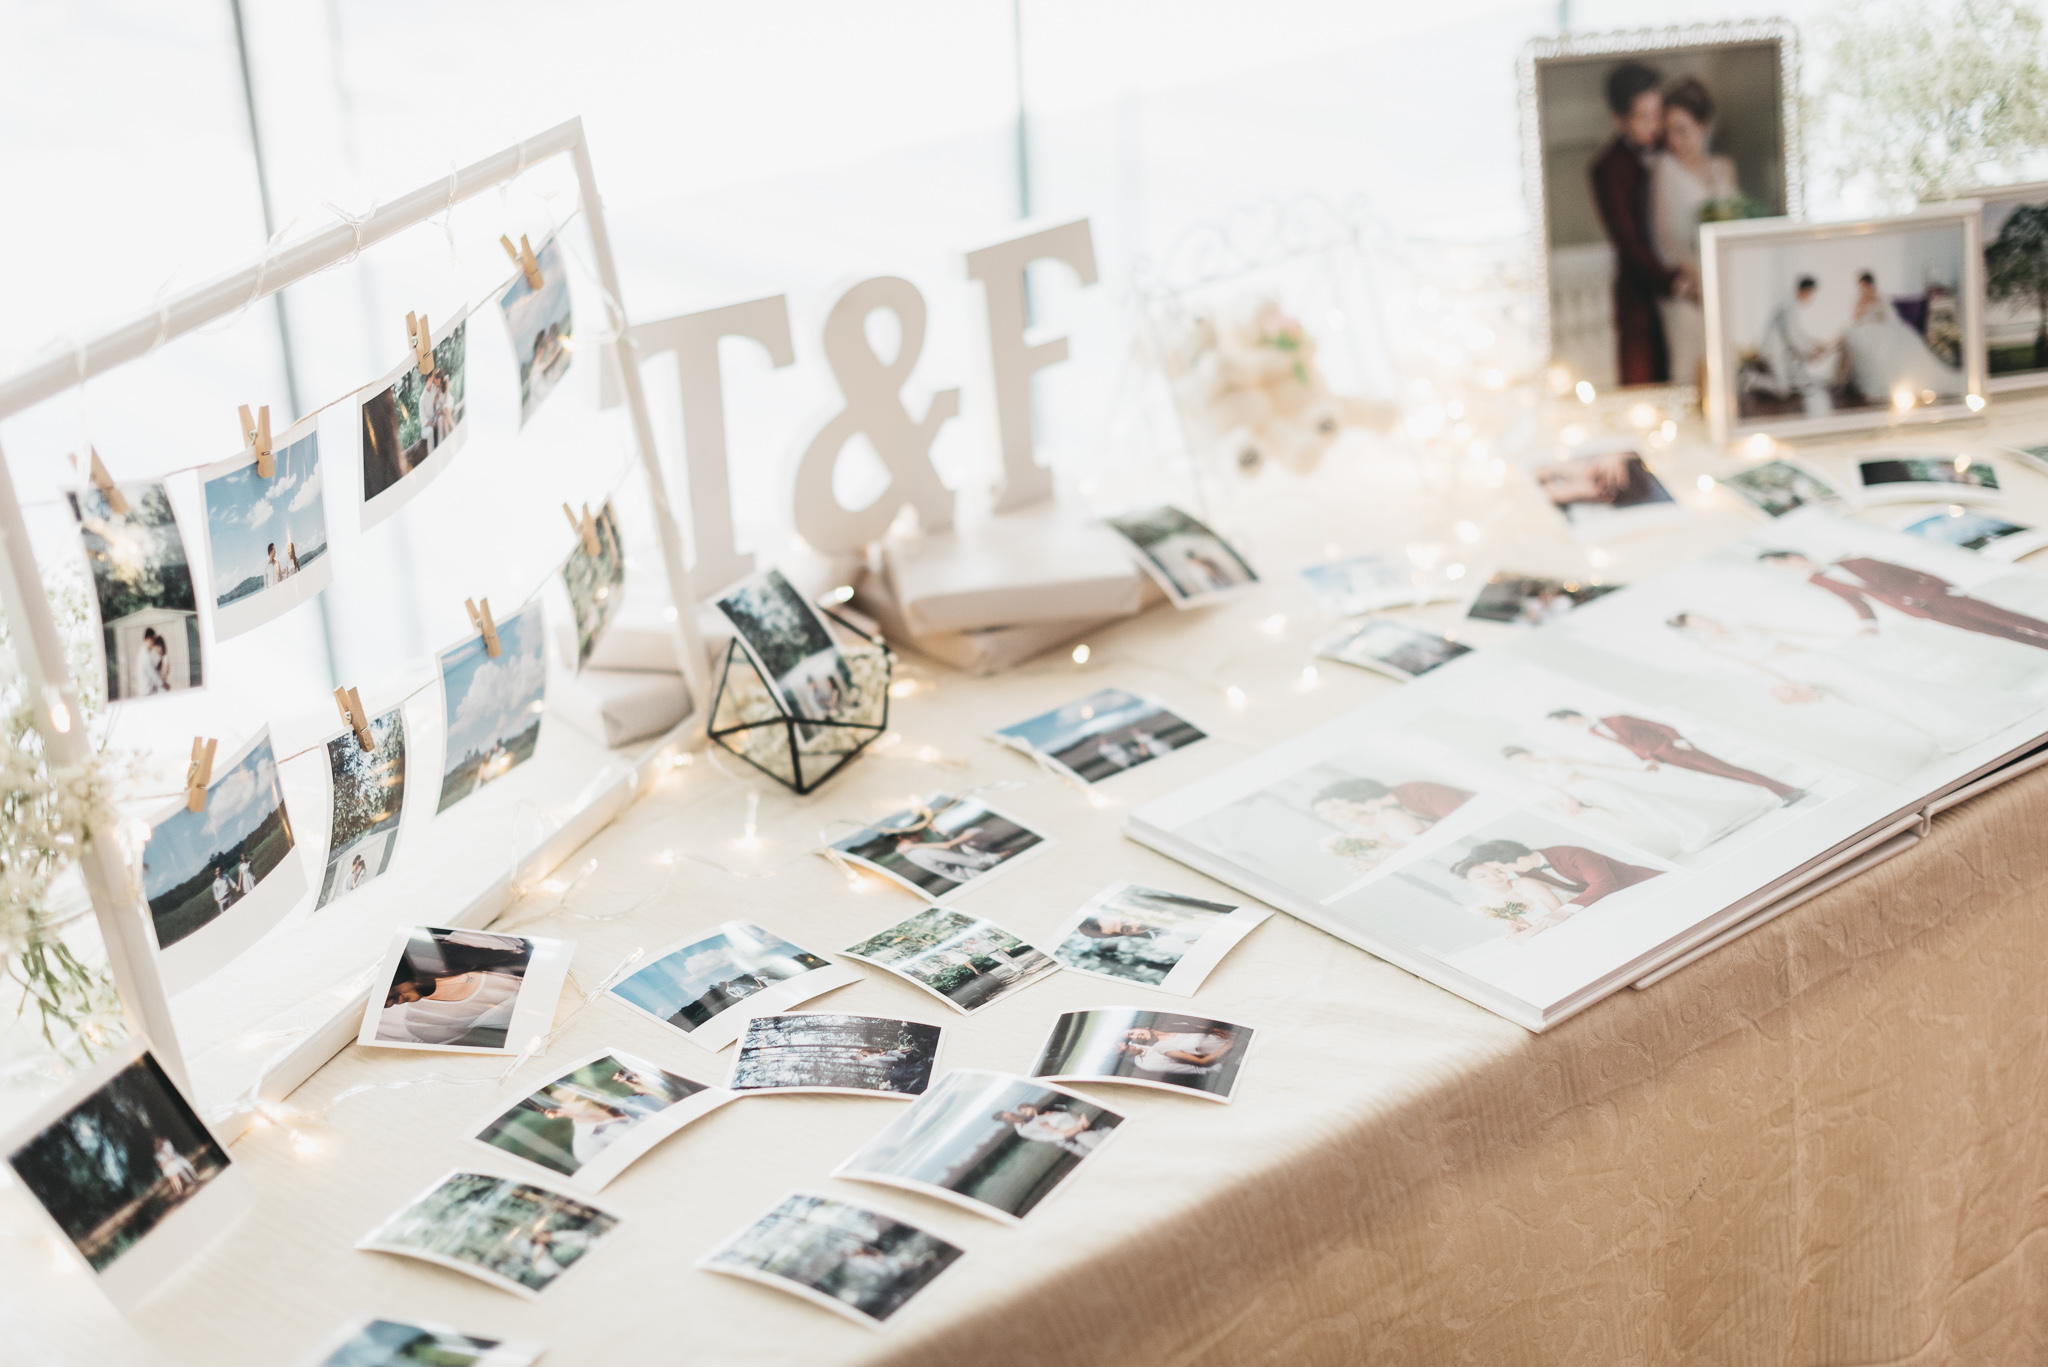 Fiona & Terence Wedding Day Highlights (resized for sharing) - 192.jpg